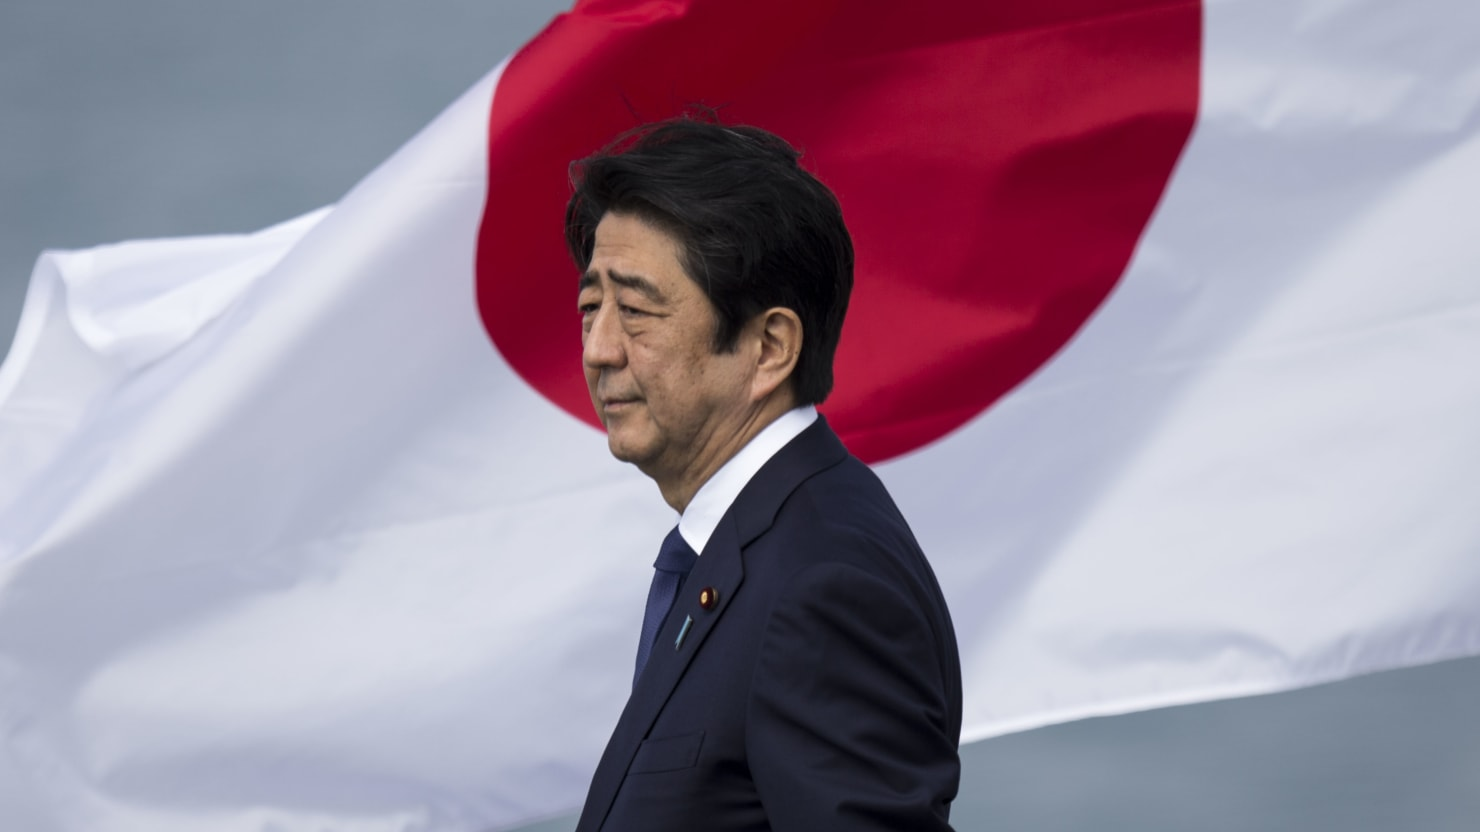 Japan's Longest-Serving PM, Shinzo Abe, Quits in Bid to 'Escape' Potential Prosecution